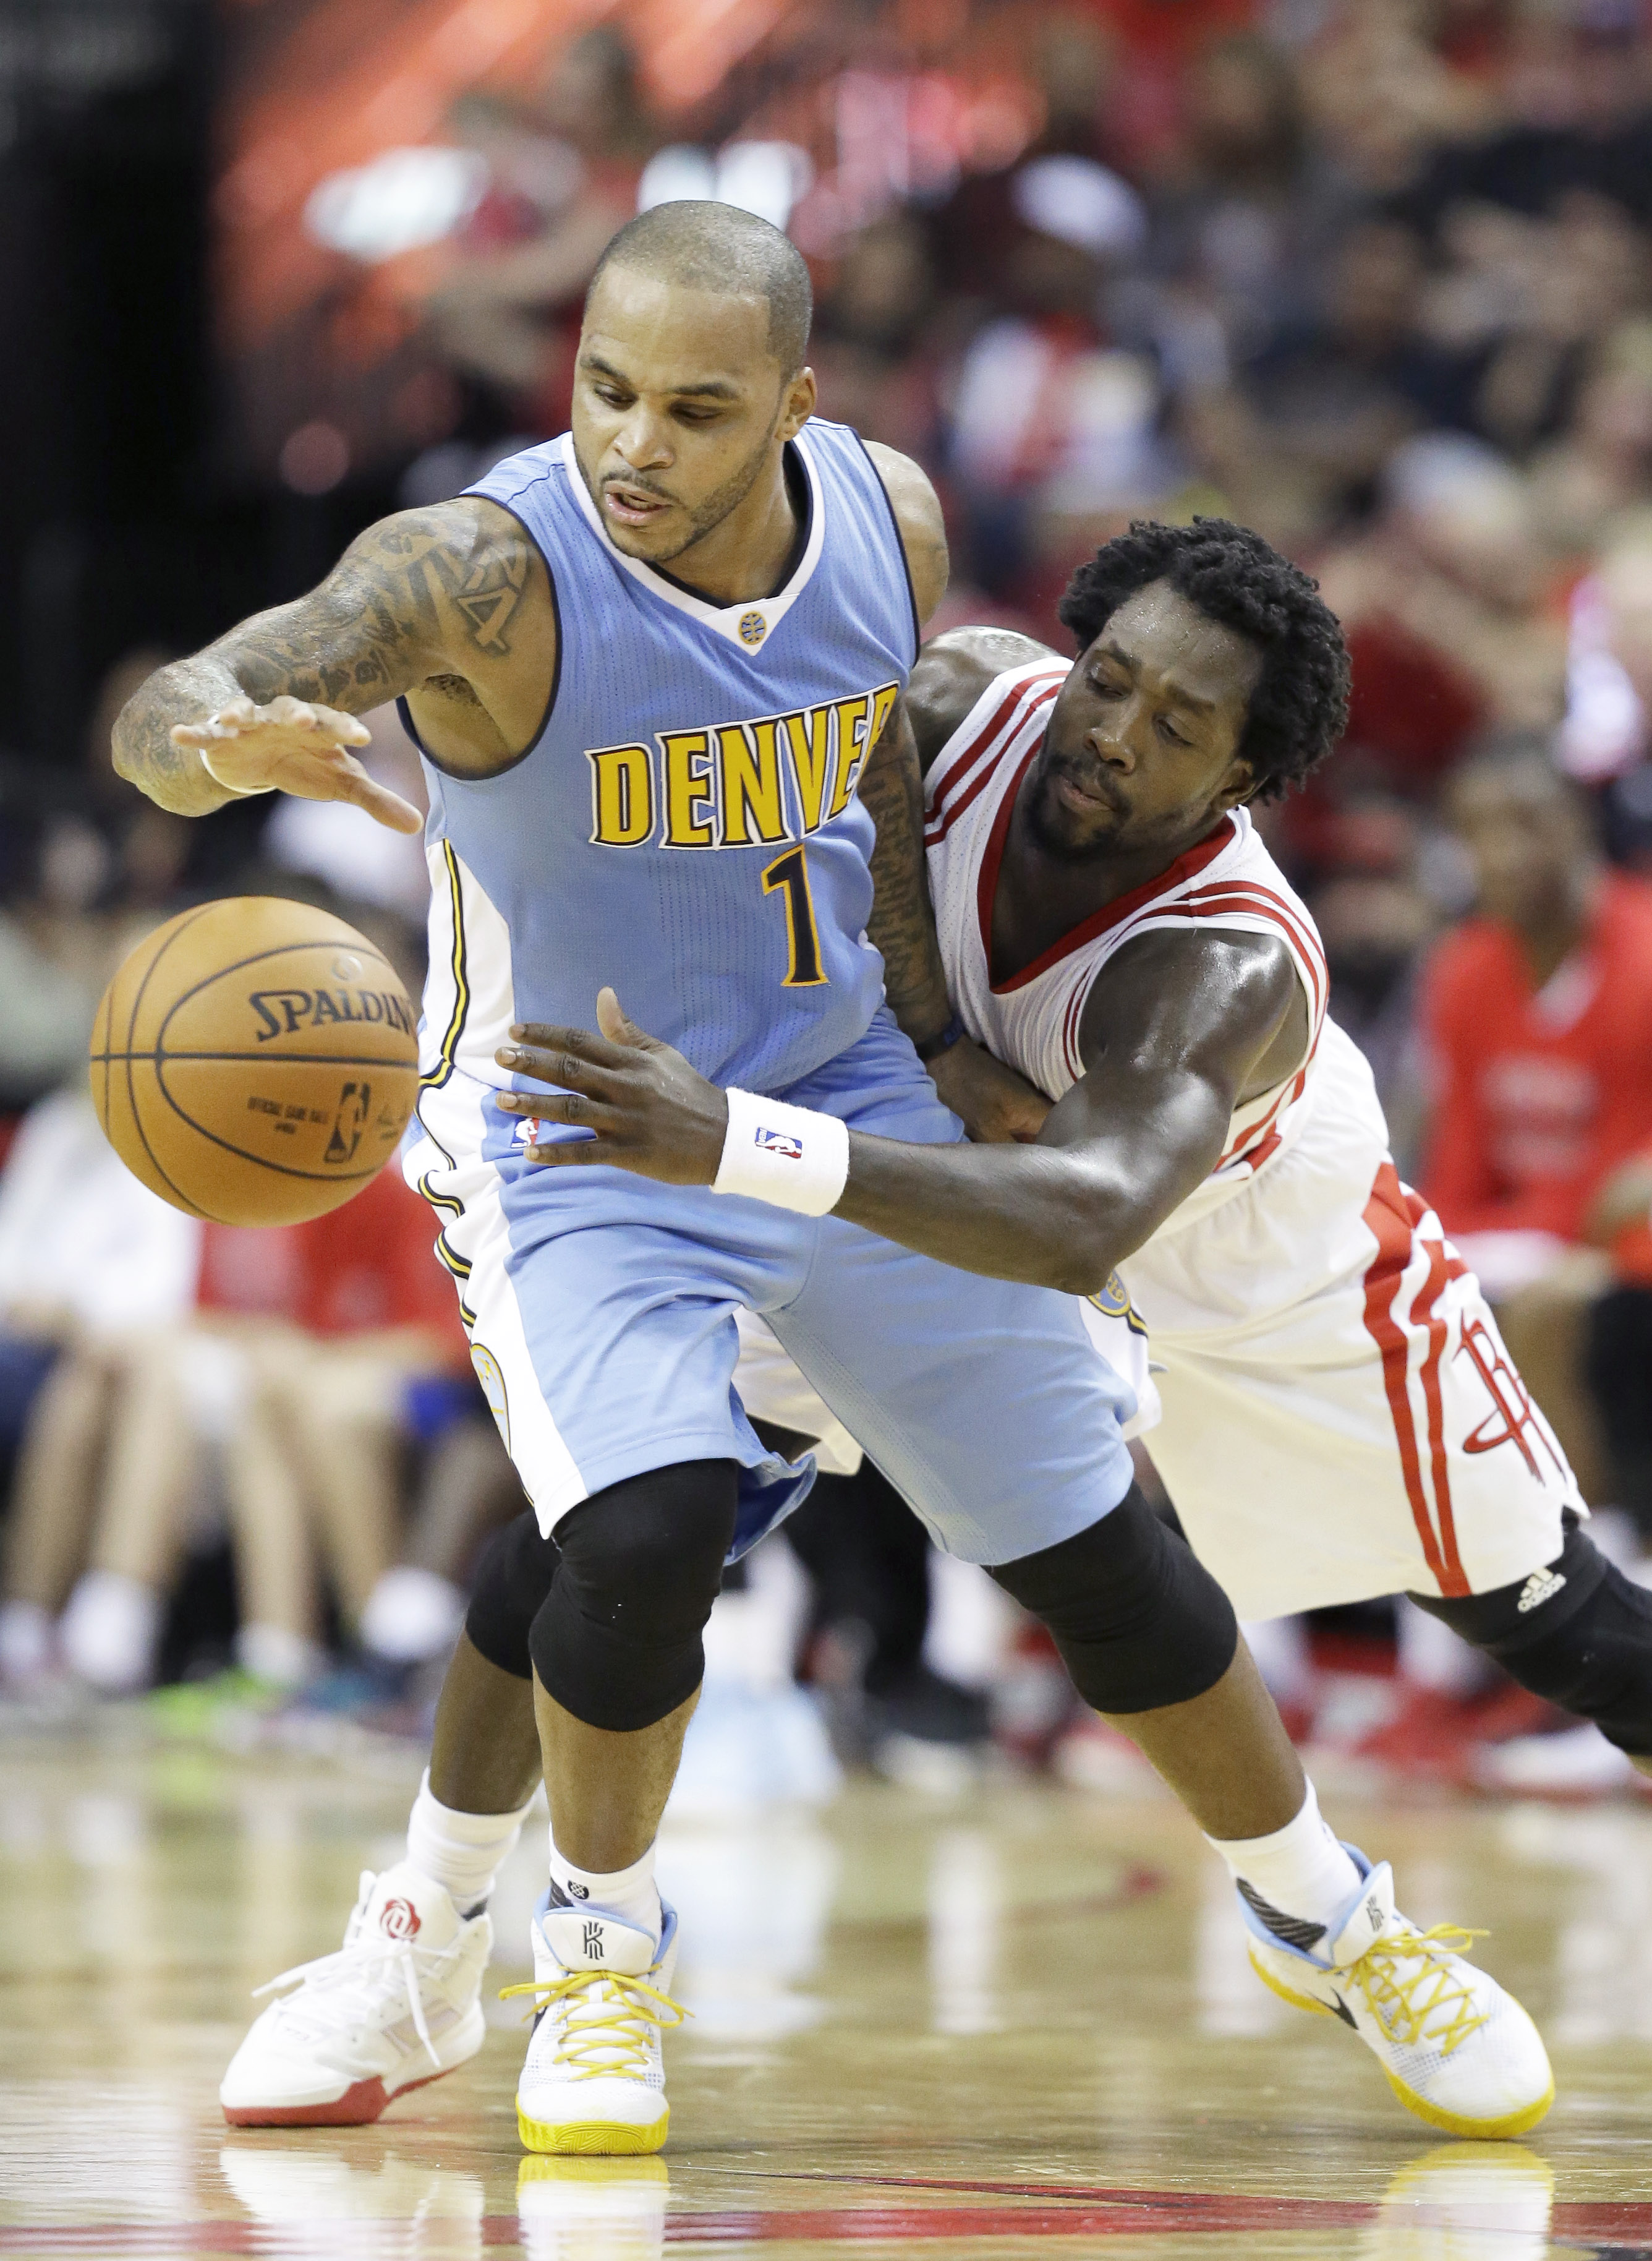 Houston Rockets' Patrick Beverley, right, tries to get the ball from Denver Nuggets' Jameer Nelson in the second half of a NBA basketball game Wednesday, Oct. 28, 2015, in Houston. Denver won 105-85. (AP Photo/Pat Sullivan)